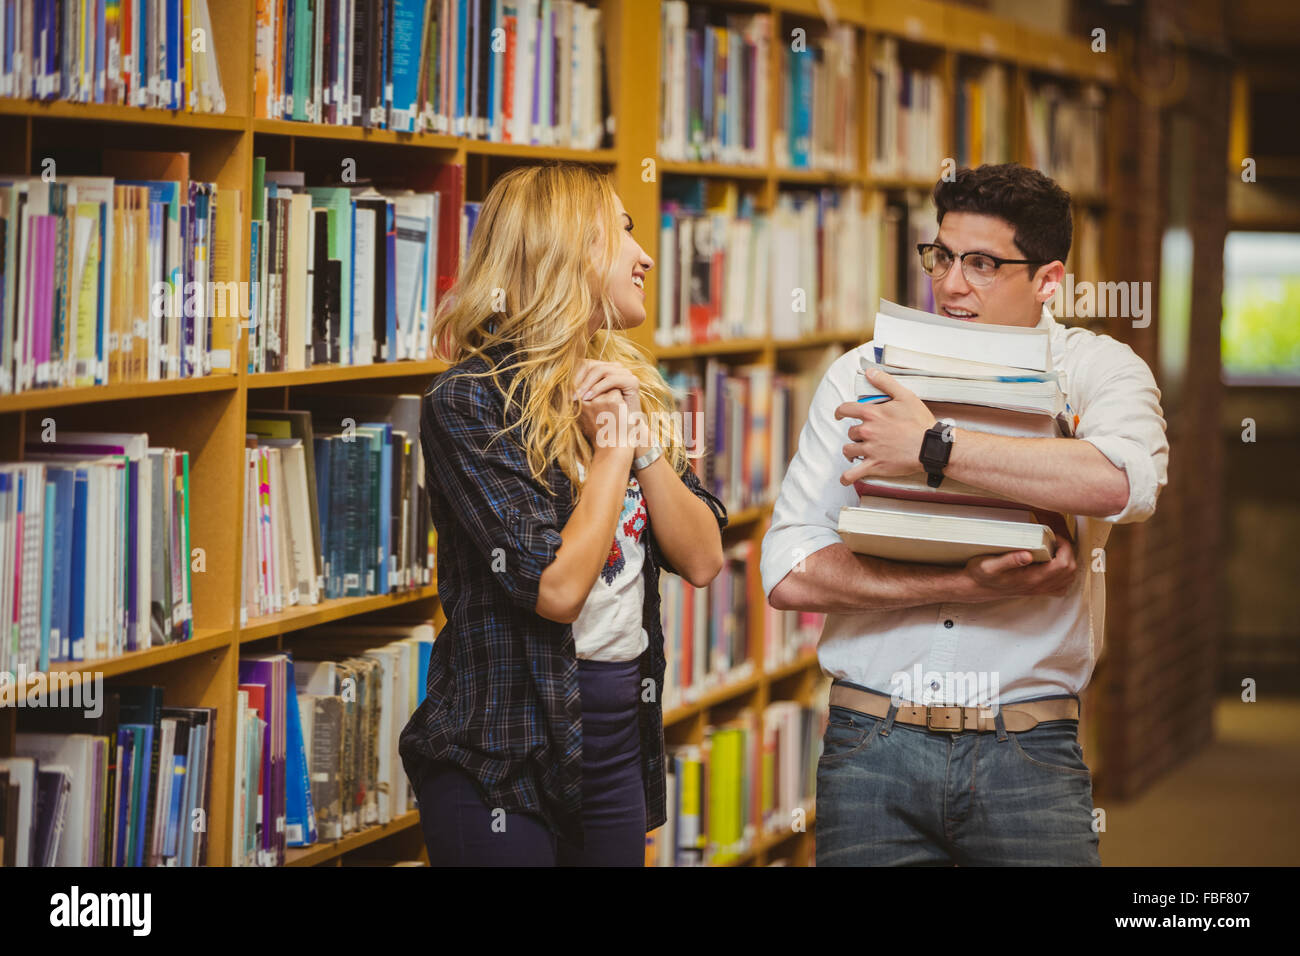 Embarrassed nerd meeting up a girl - Stock Image